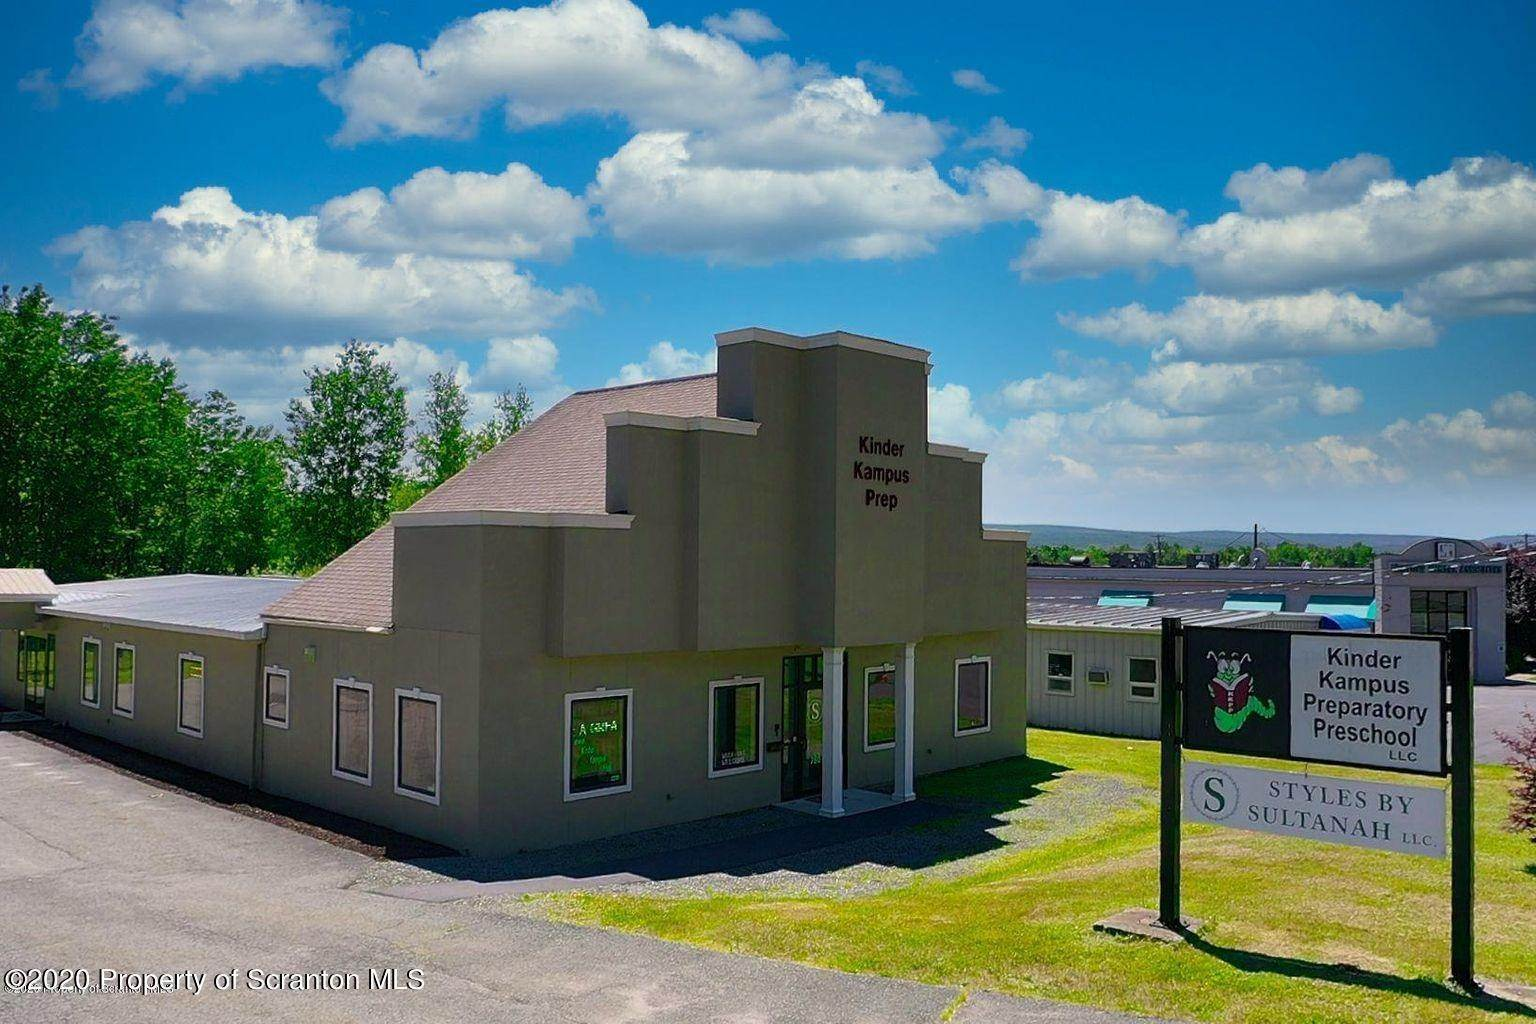 3. Commercial for Rent at 780 Rt 6 Scranton Cdle Highway Suite A Eynon, Pennsylvania 18403 United States